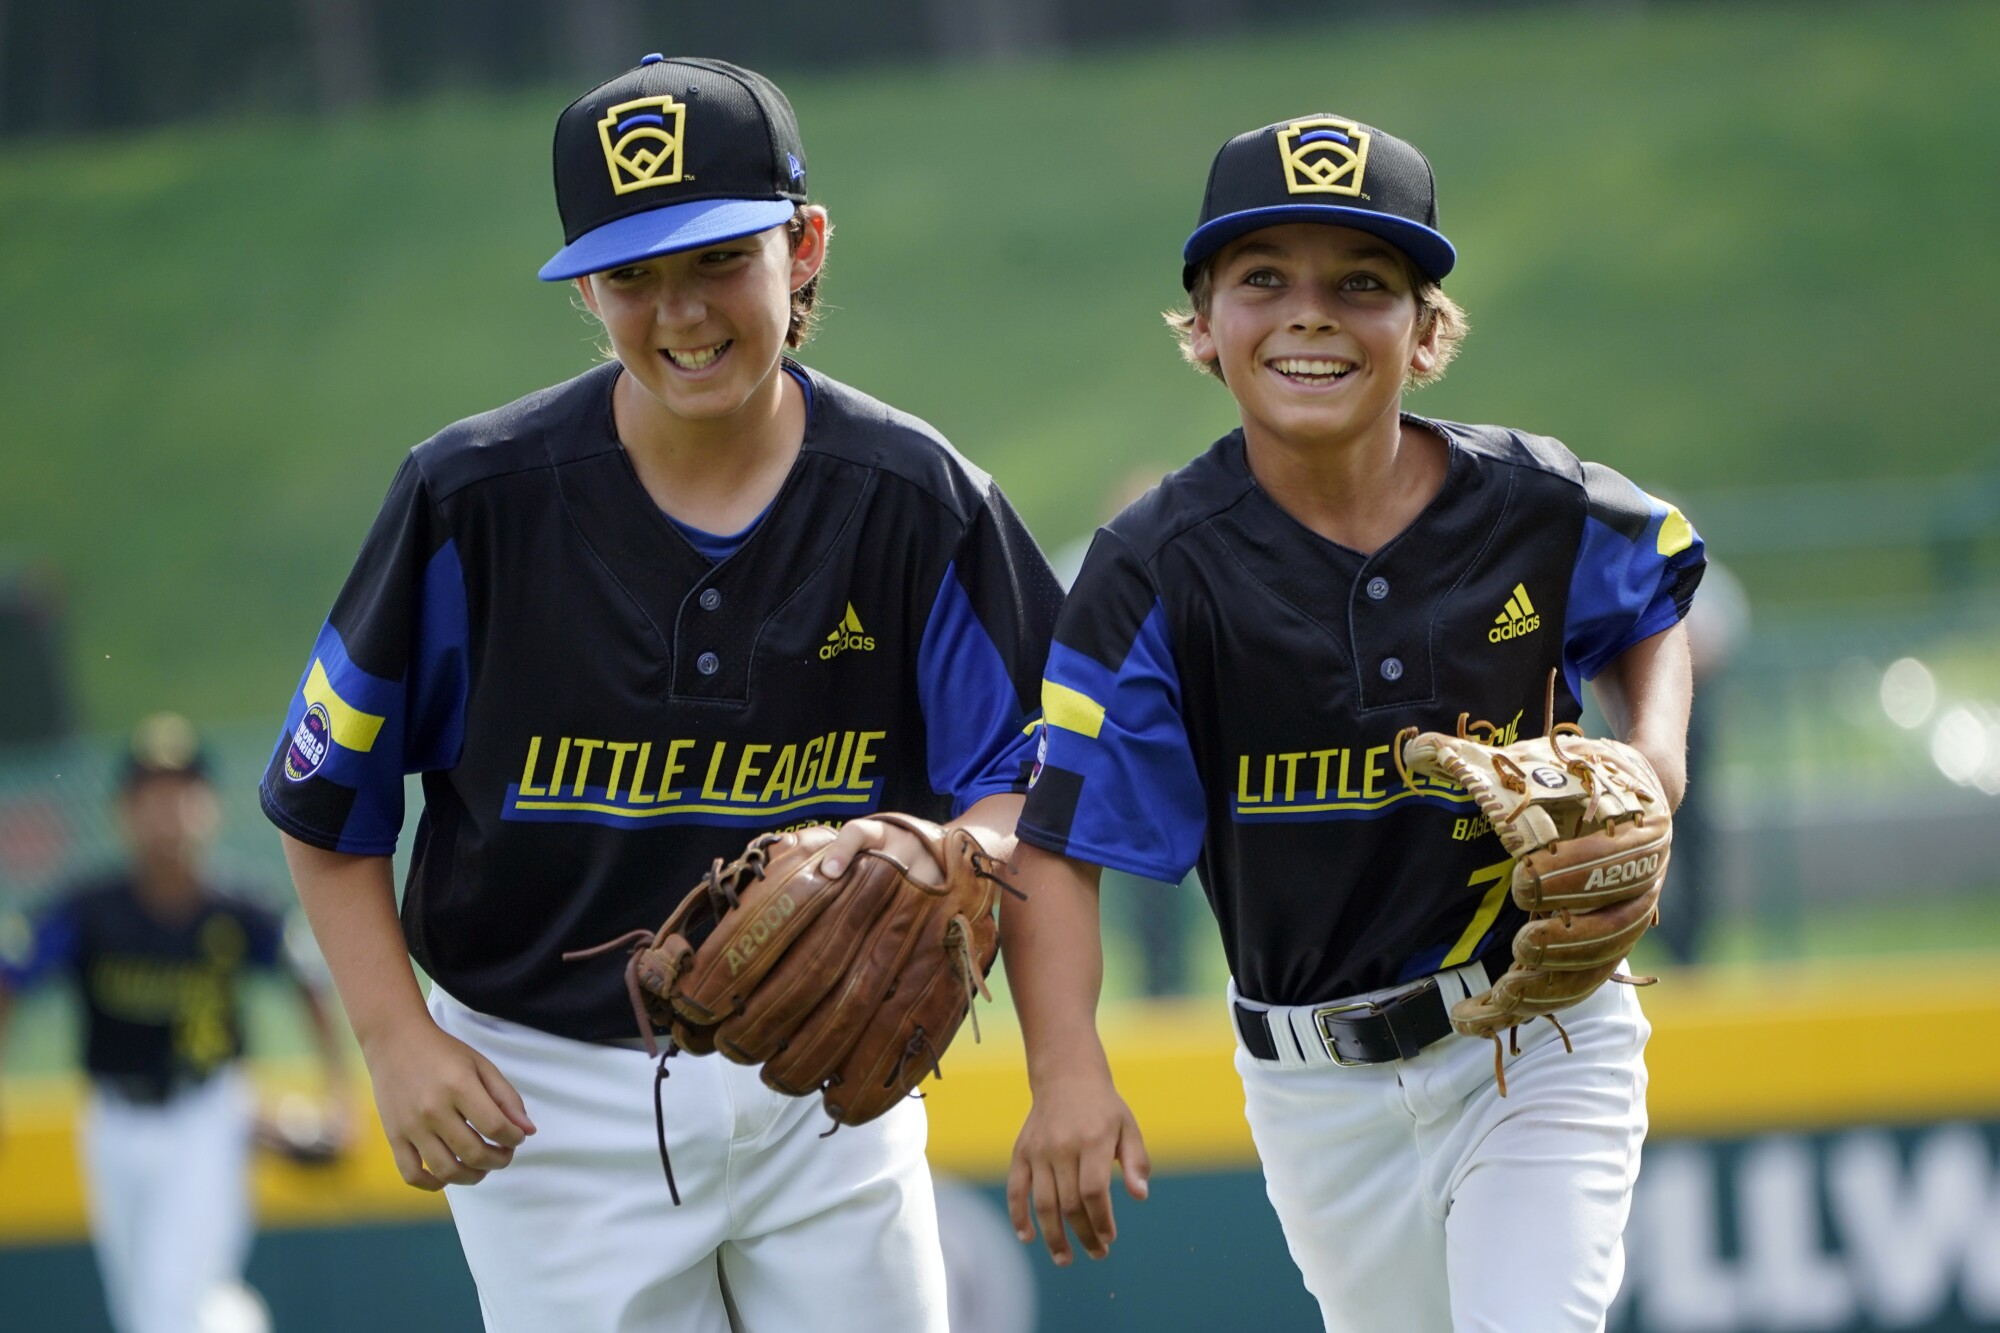 Torrance, Calif.'s Dominic Golia and pitcher Xavier Navarro smile as the run off the field